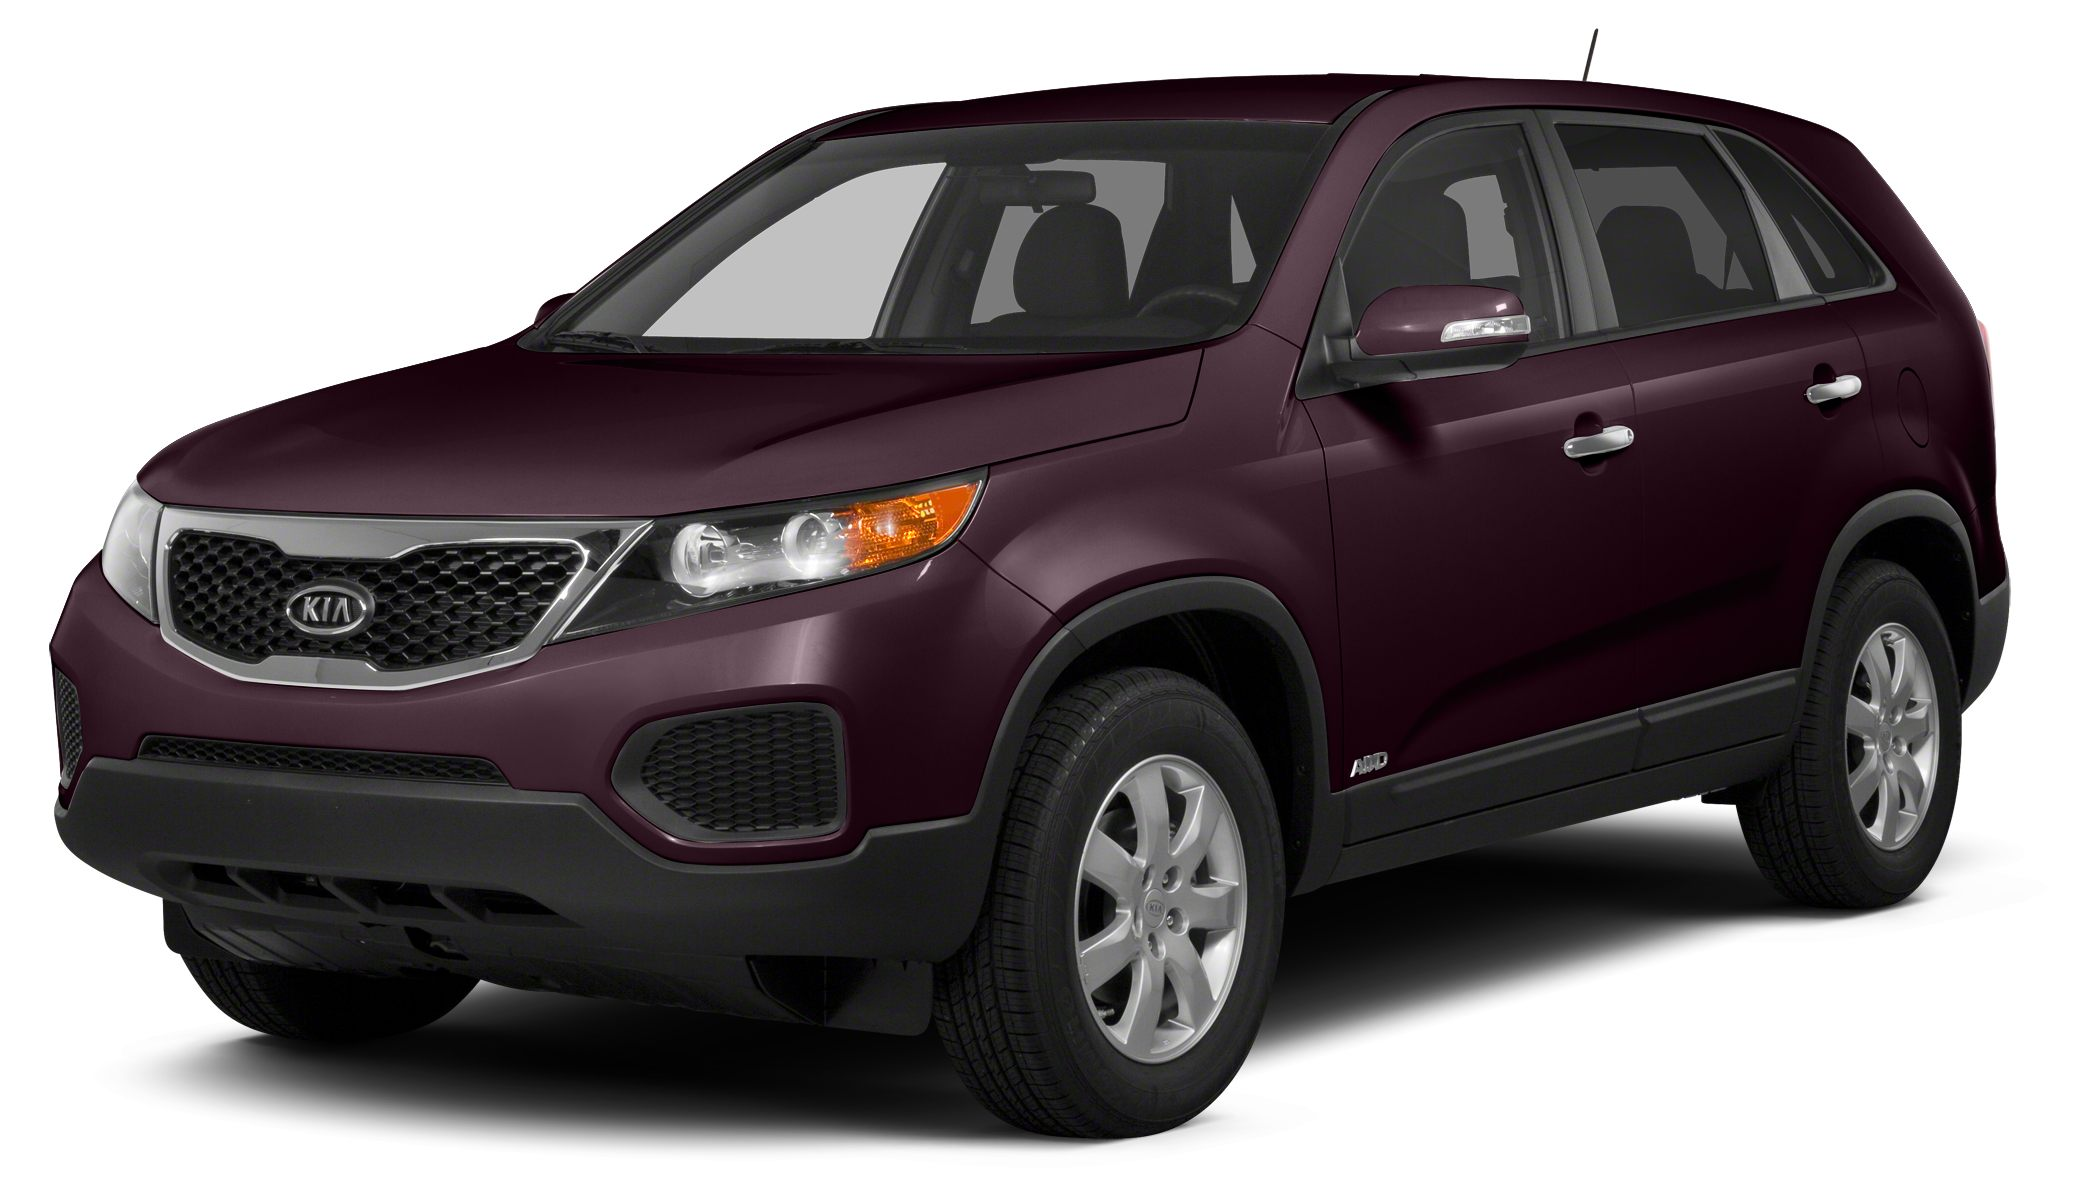 2013 Kia Sorento EX Recent Arrival Priced below KBB Fair Purchase Price REAR VIEW CAMERA BLU